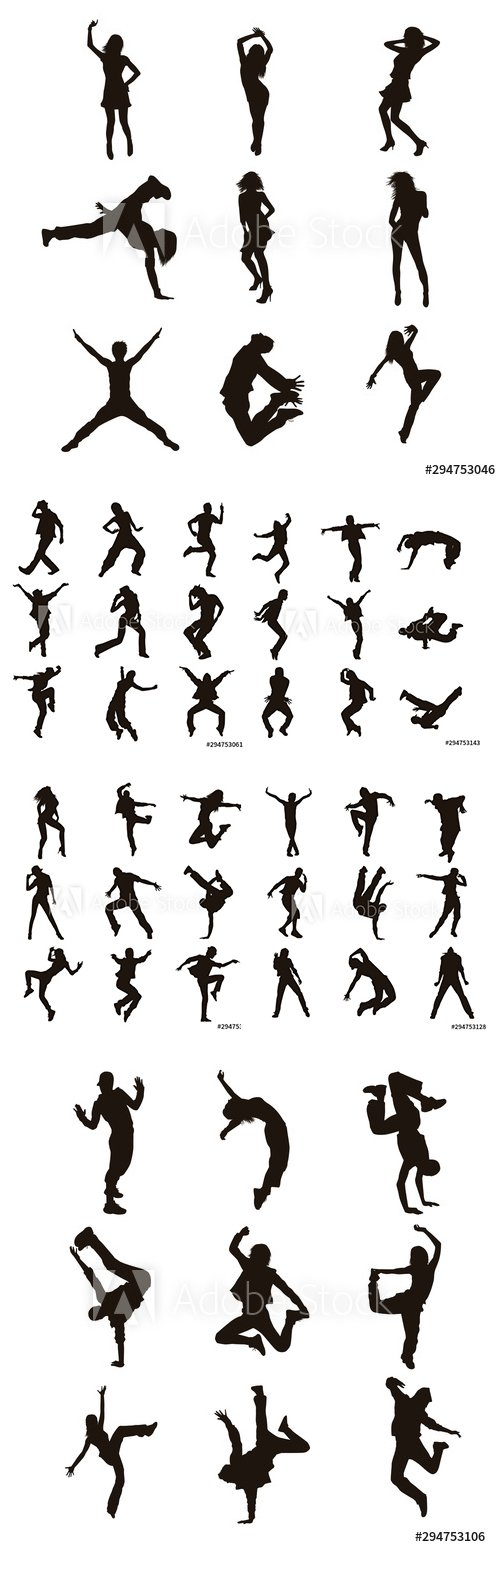 Dancer Silhouettes Vector Illustration